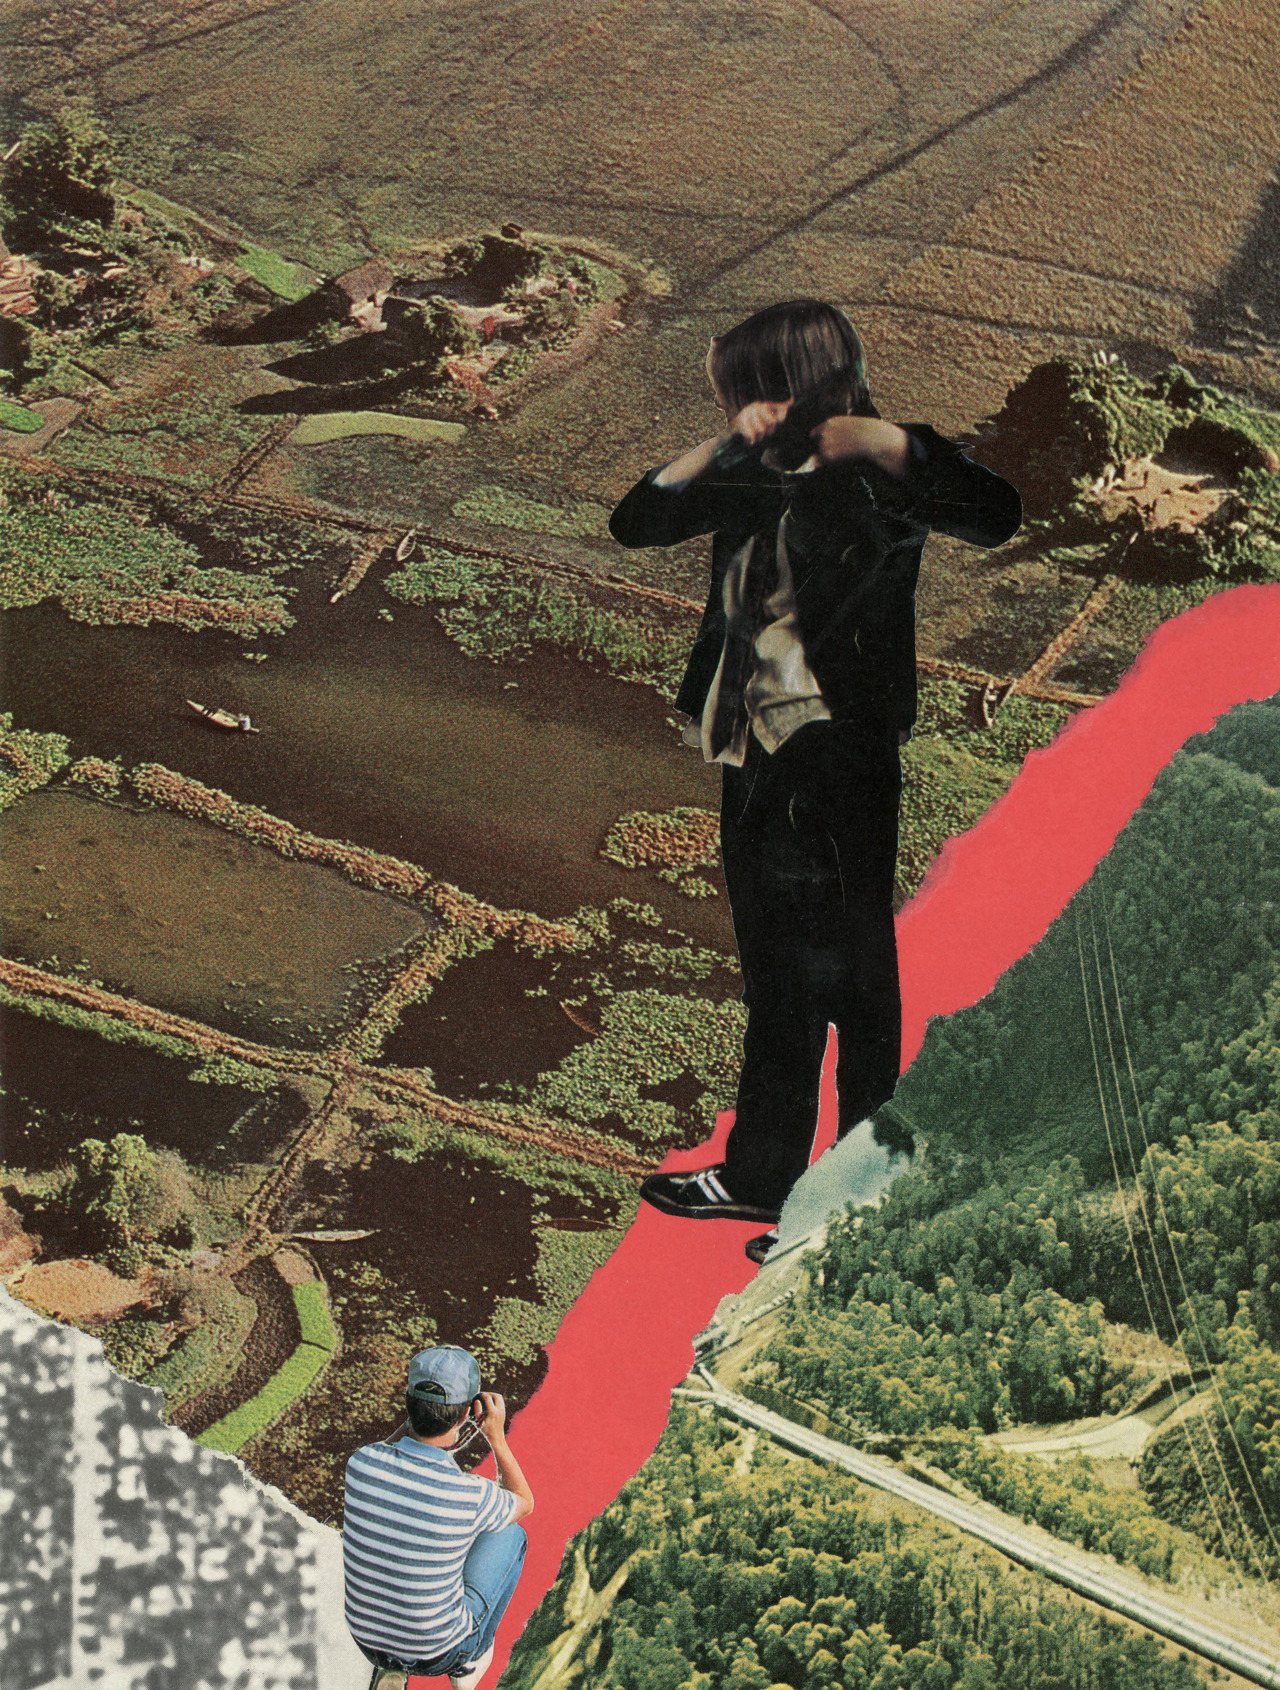 """When Harold met Maude"" by: aricollage Analogue collage"